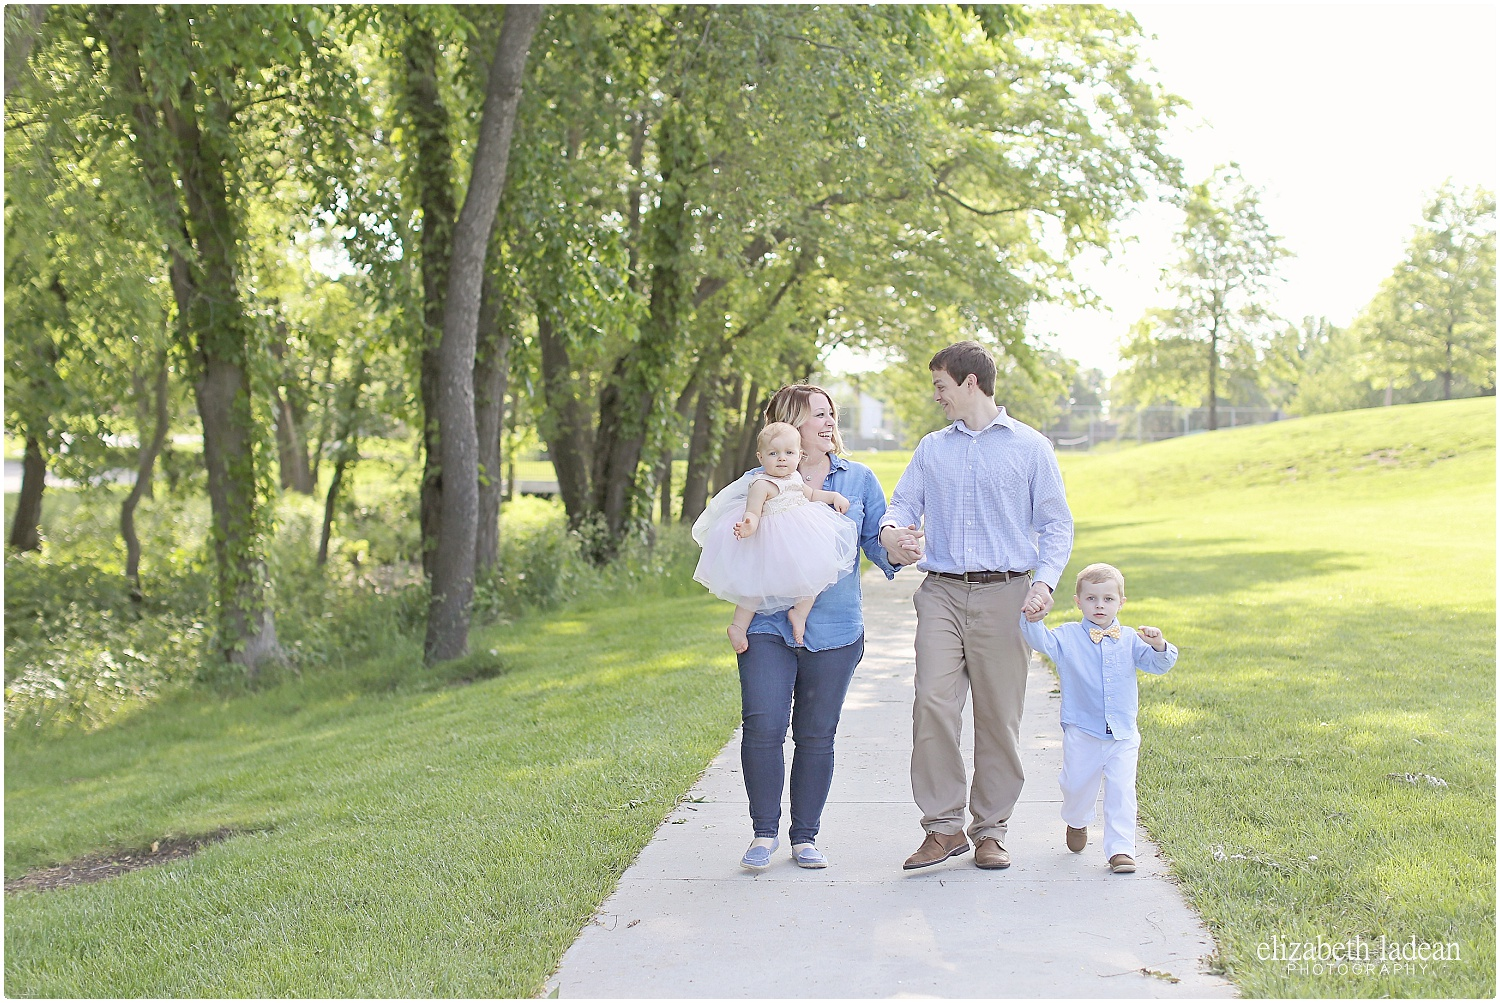 Sar-Ko-Park-Family-Photos-Kansas-HFam-ElizabethLadeanPhotography-photo_6207.jpg